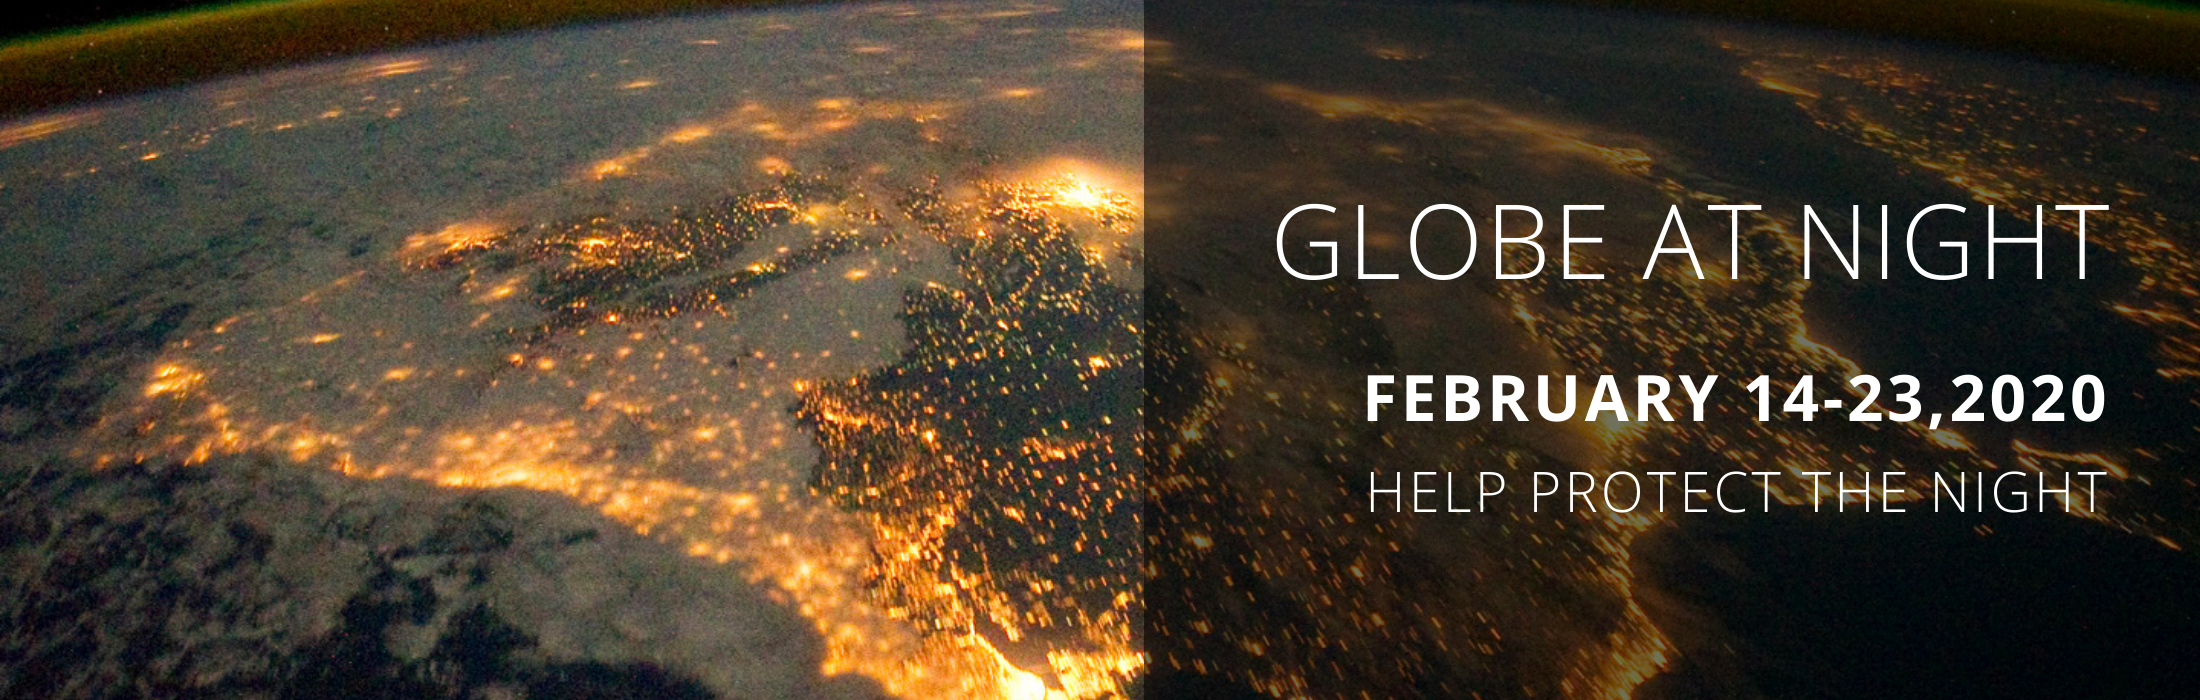 Globe at night February 14-23, 2020 Help Protect The Night